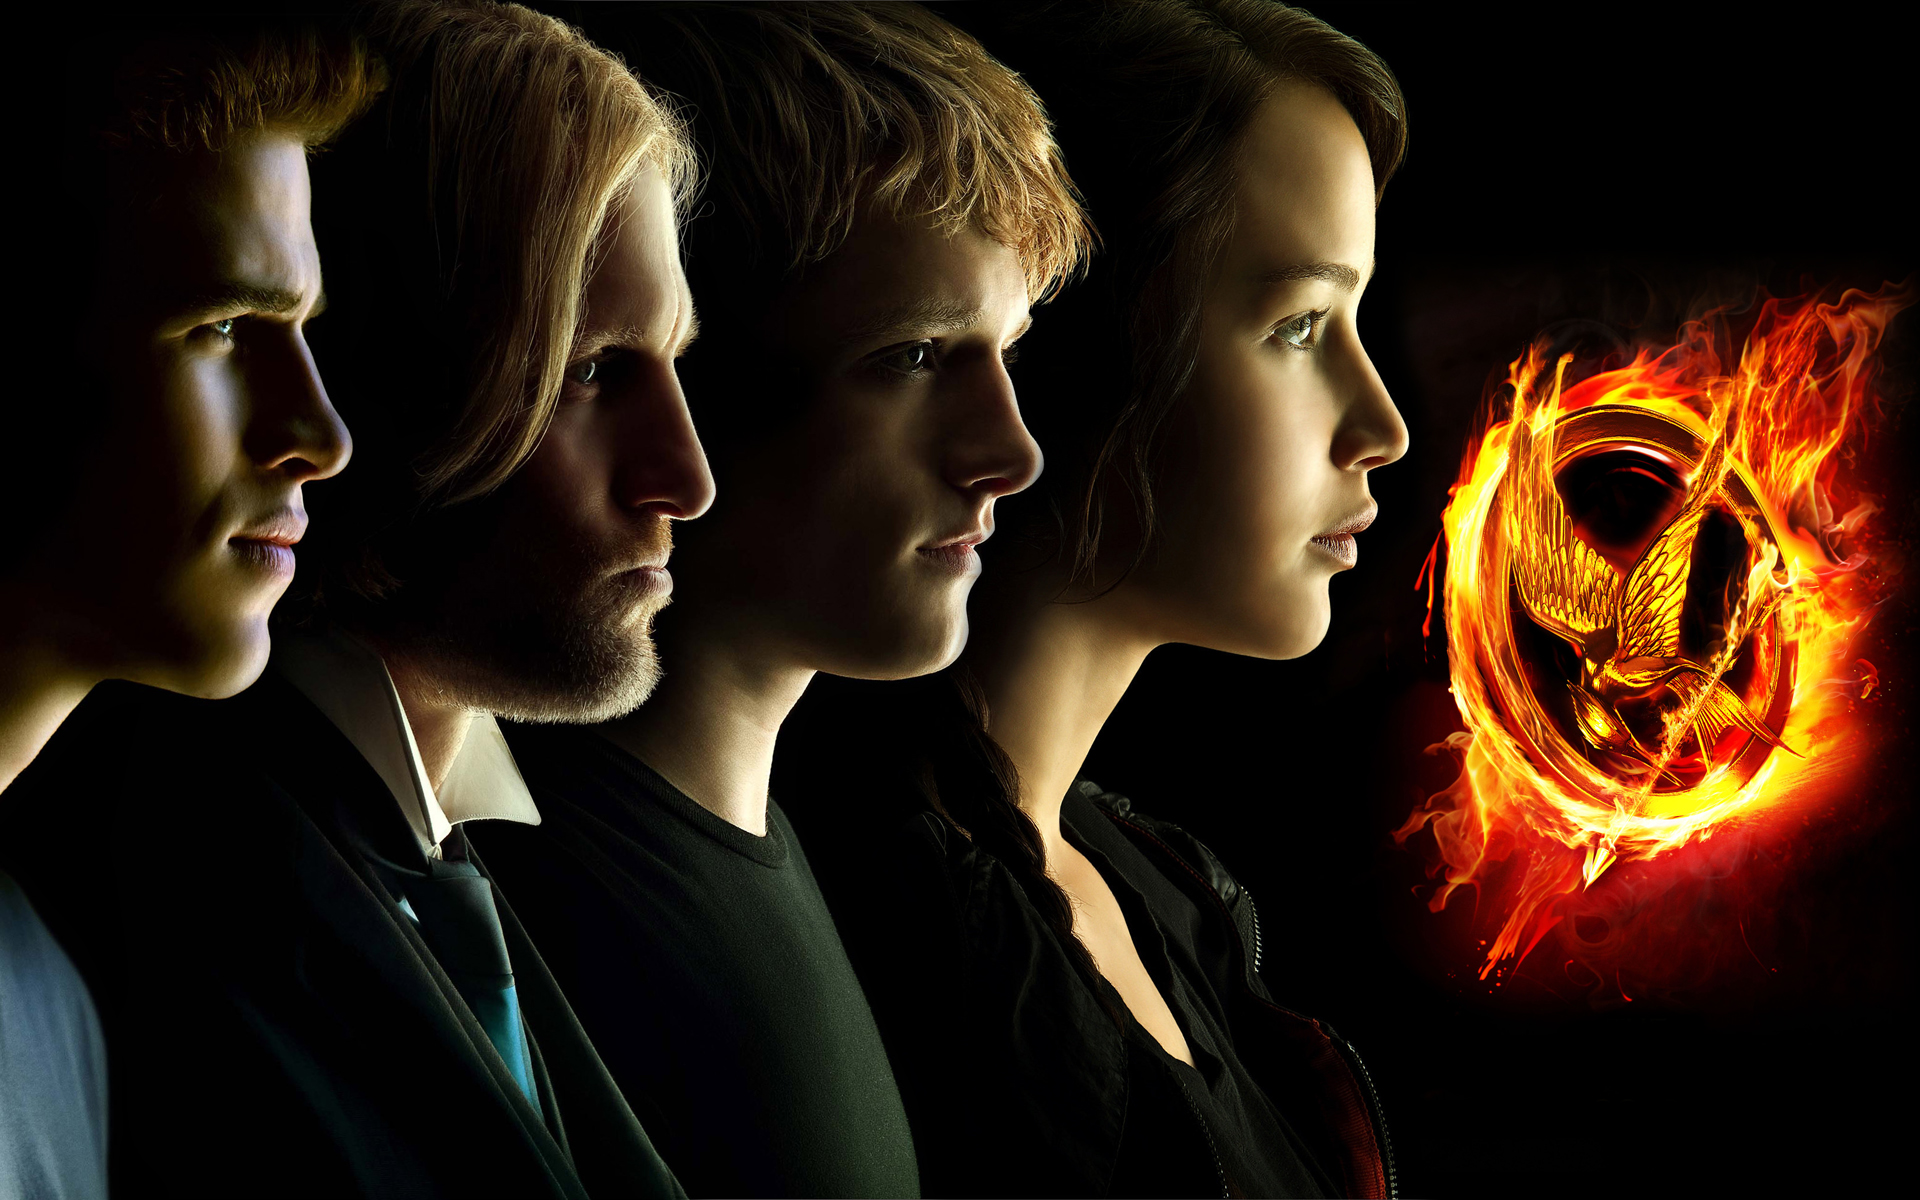 hunger games main characters